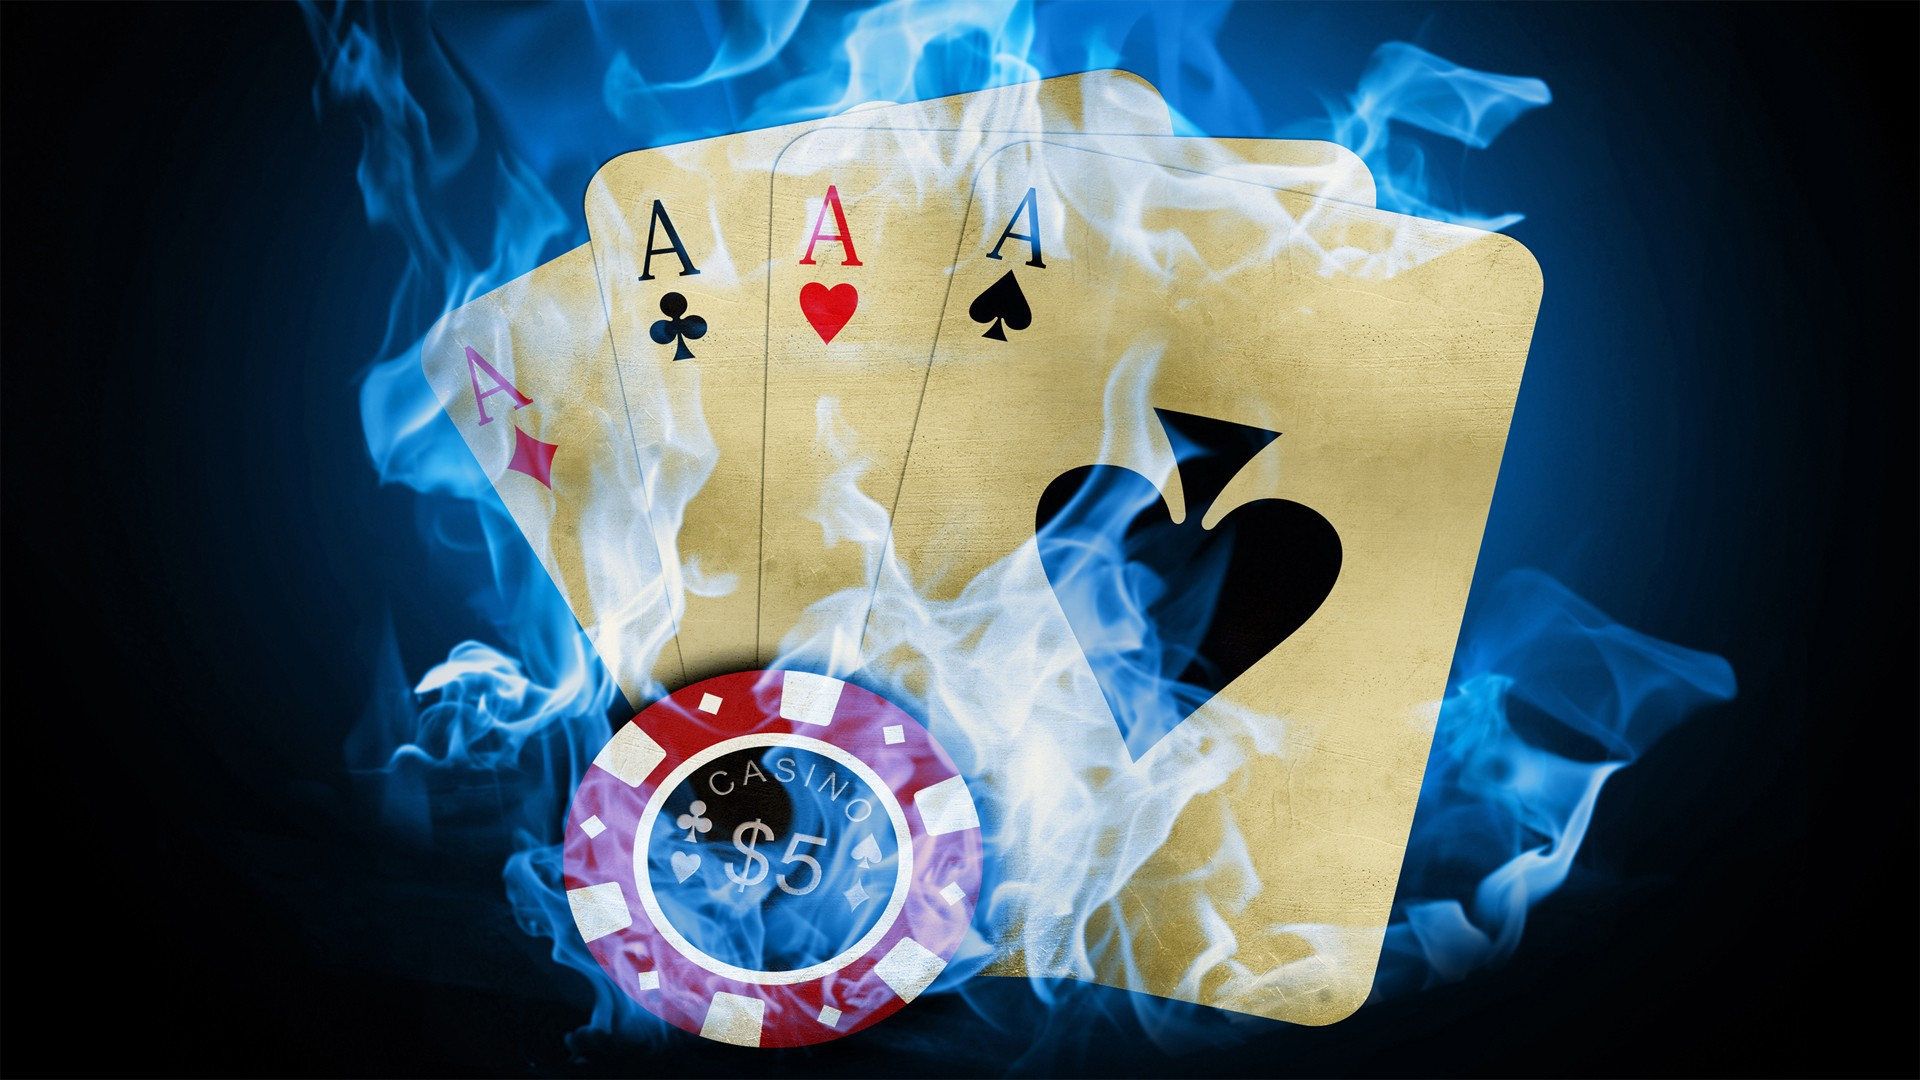 What Are The Important Benefits Of Online Casino